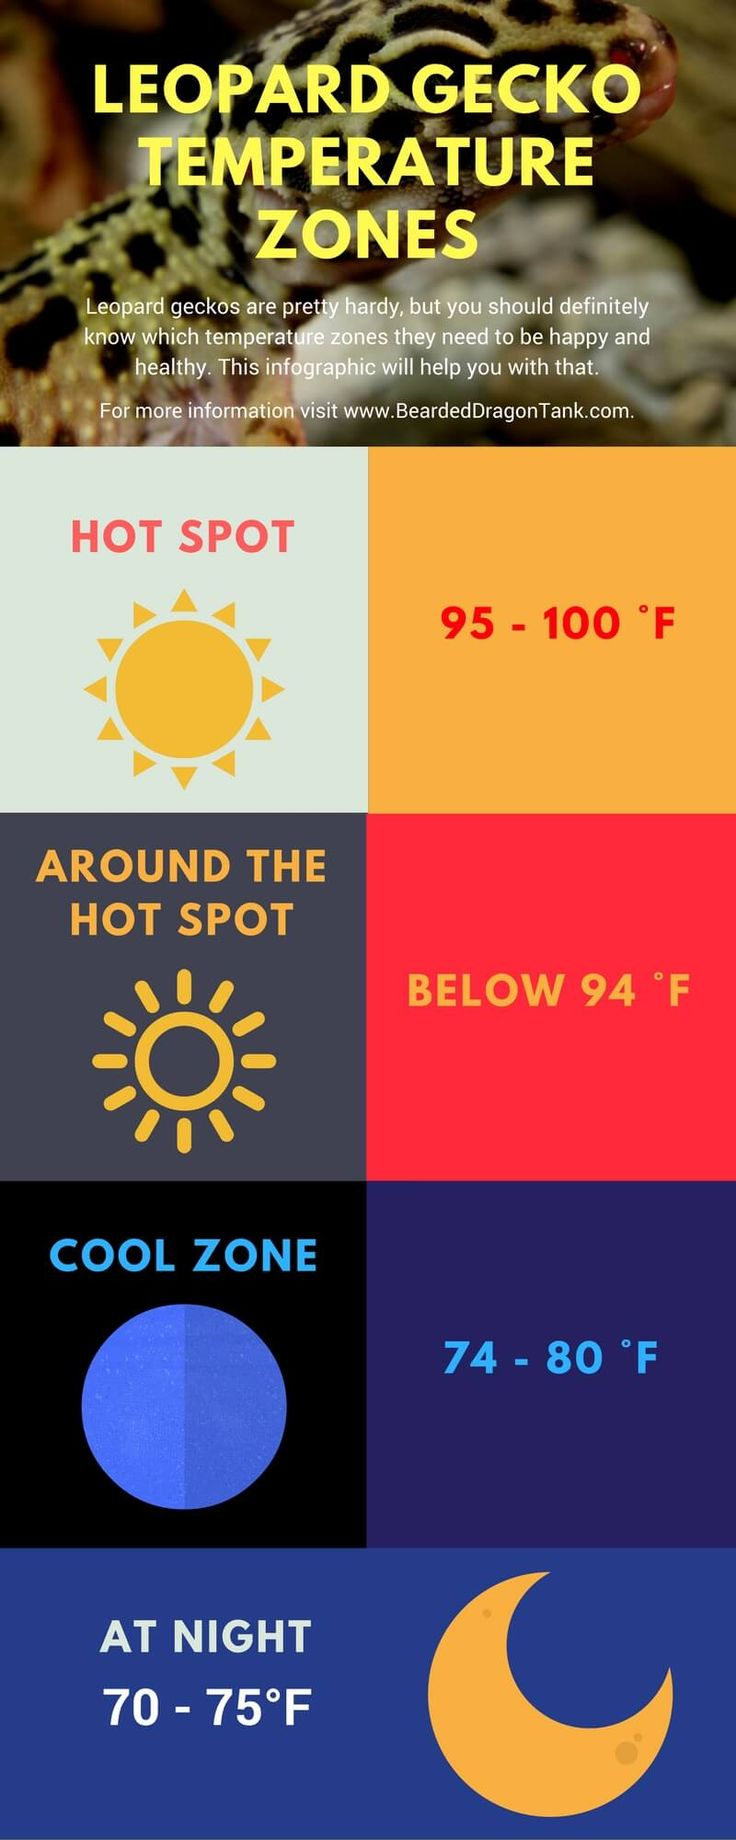 This is completely inaccurate. The hot spot should be at 92. The cool side should be room temp.